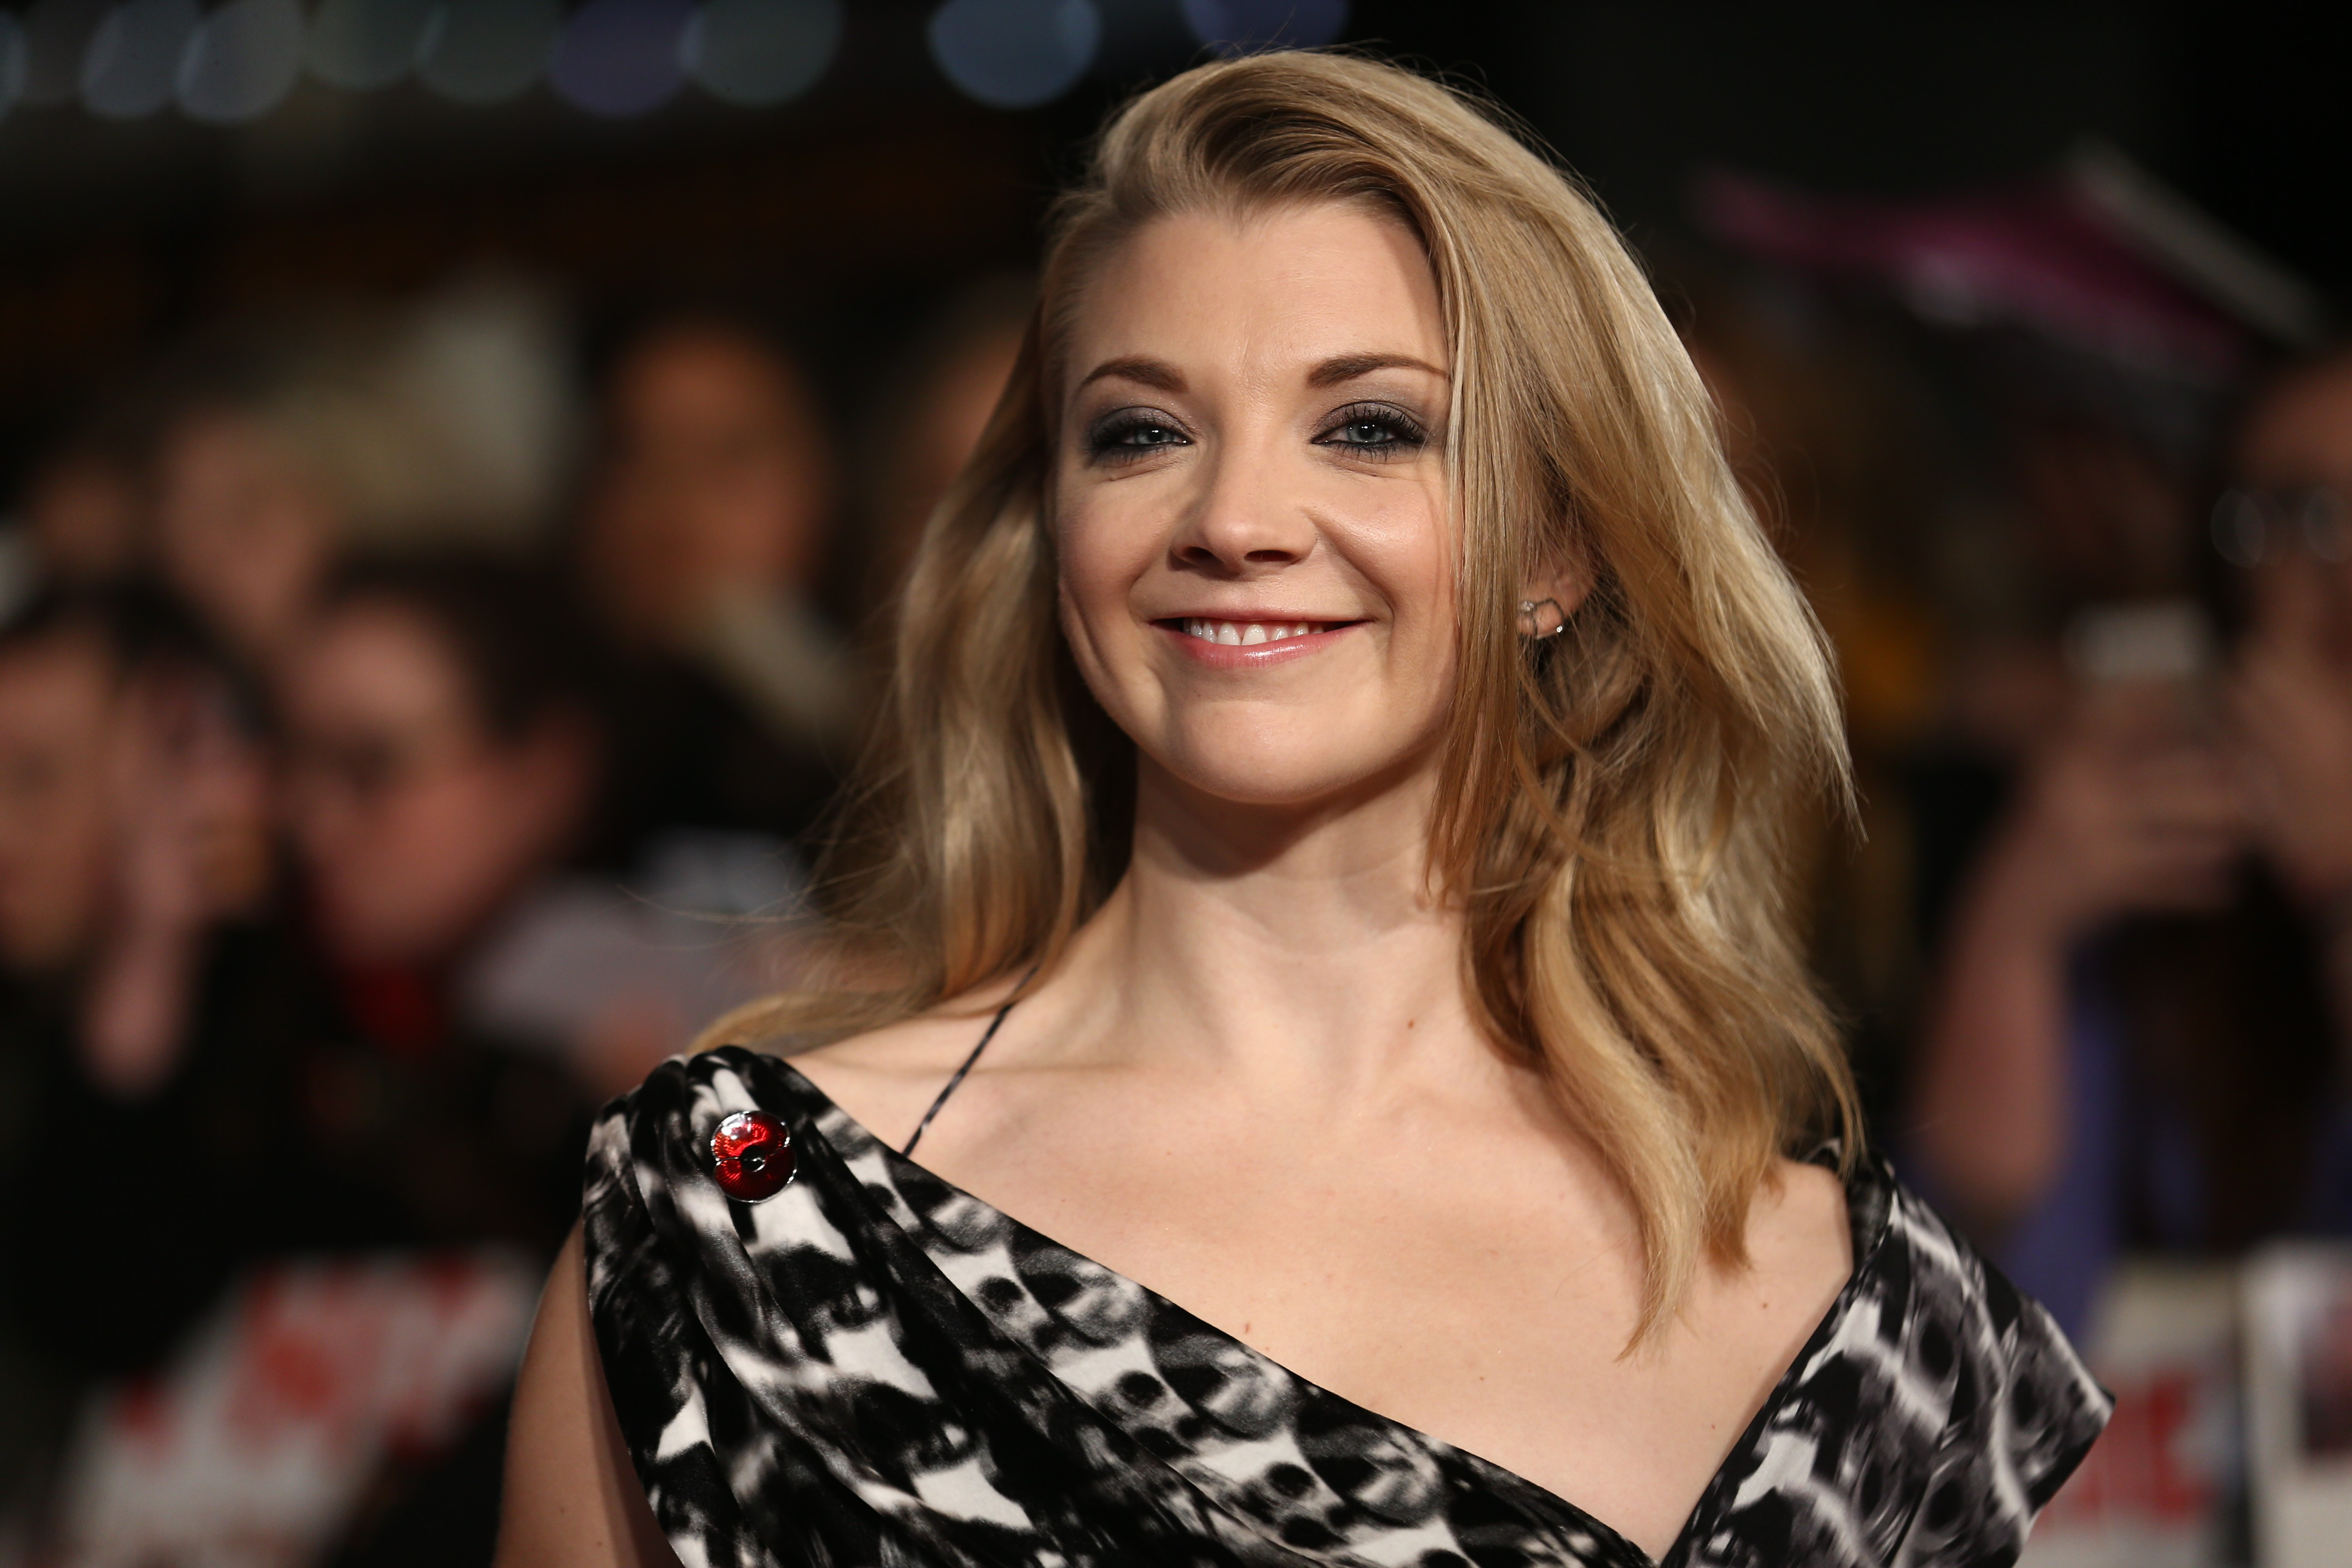 Natalie Dormer Hottest Photos   40 Sexy Near-Nude Pictures